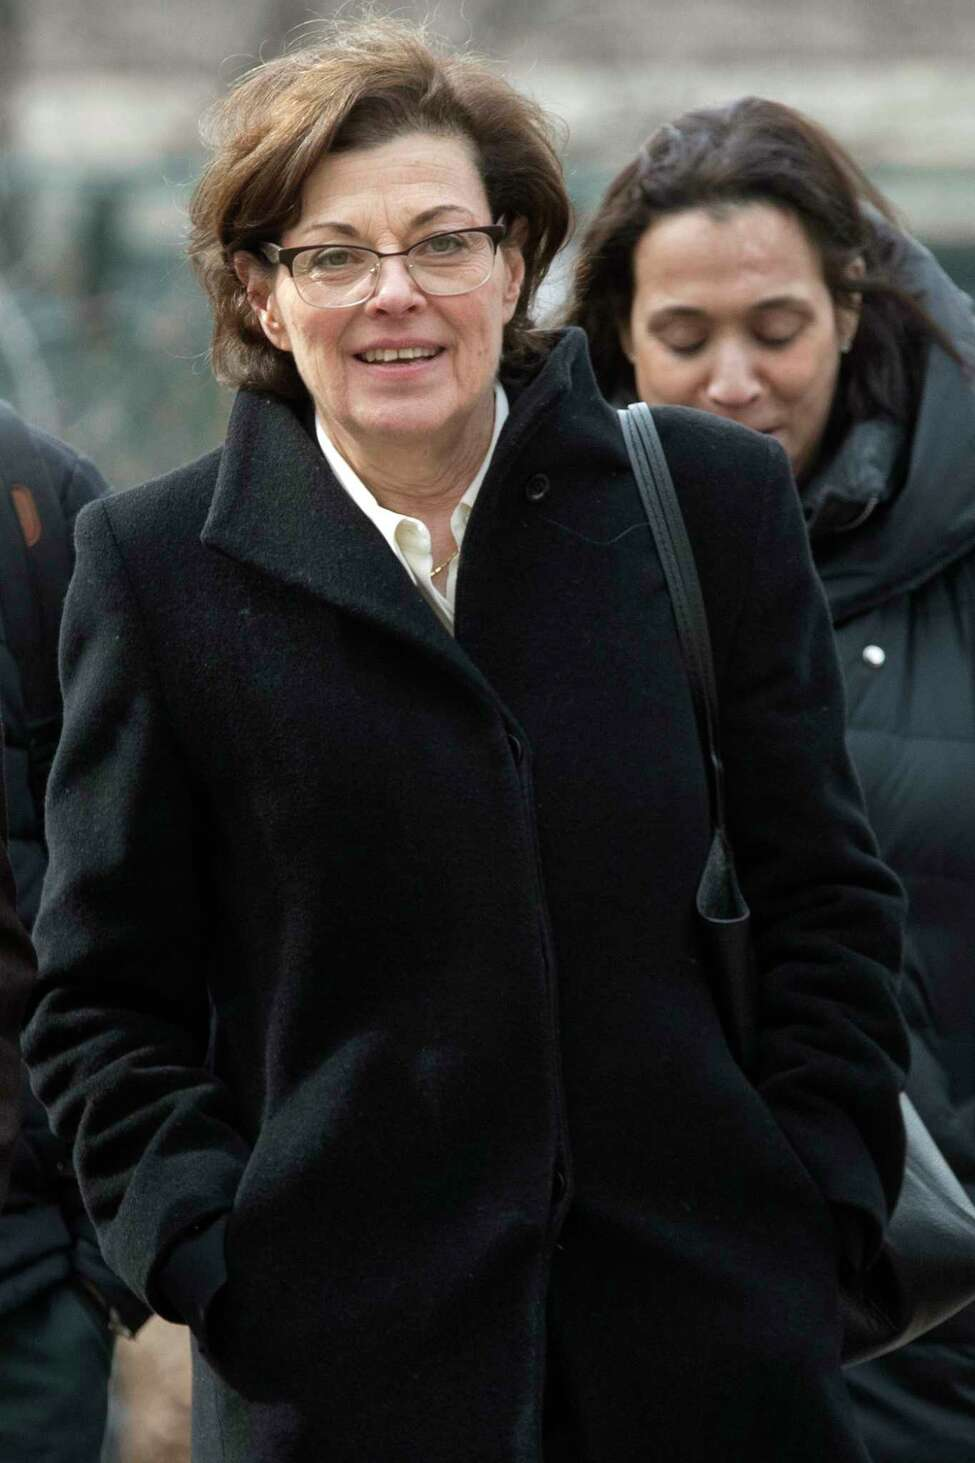 Nancy Salzman arrives at Brooklyn federal court on  Wednesday, March 13, 2019, in New York. Salzman, a co-founder of NXIVM, pleaded guilty to one count of racketeering conspiracy.